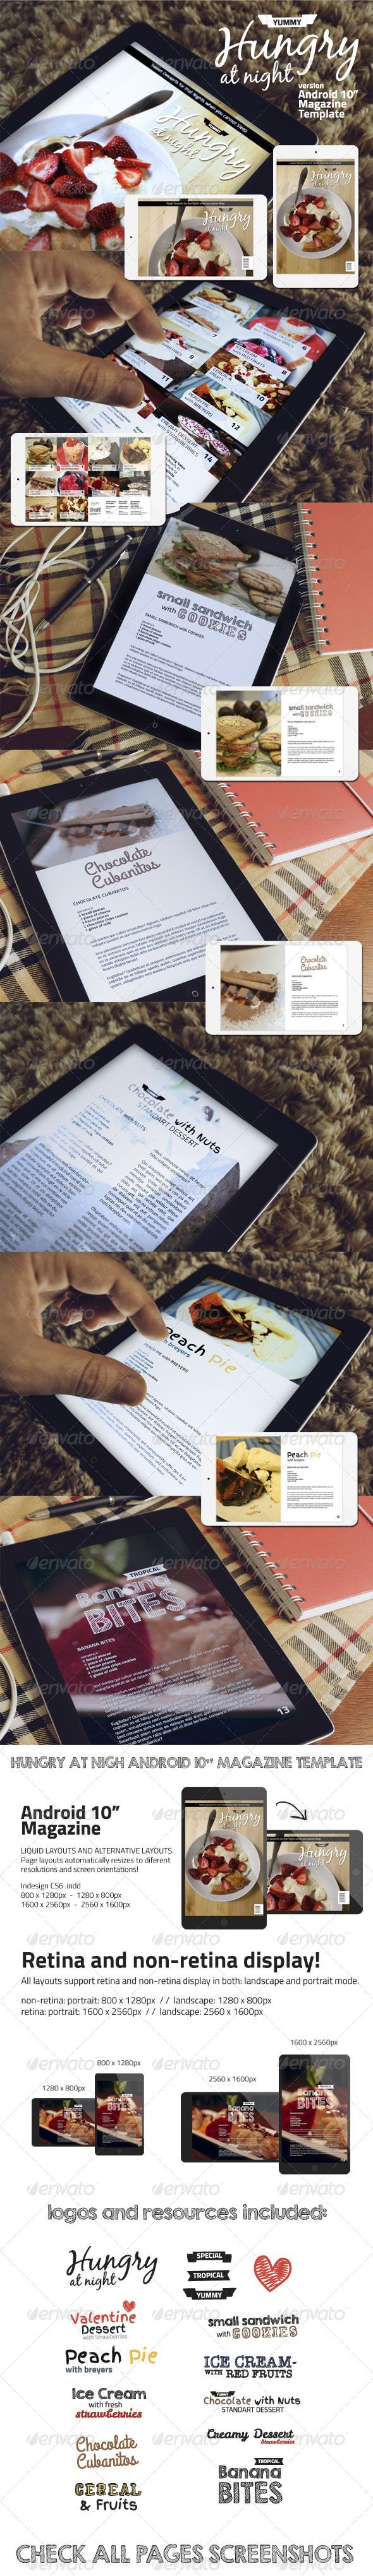 Hungry At Night Android Magazine Template #design Download: http://graphicriver.net/item/-hungry-at-night-android-magazine-template-/7014677?ref=ksioks